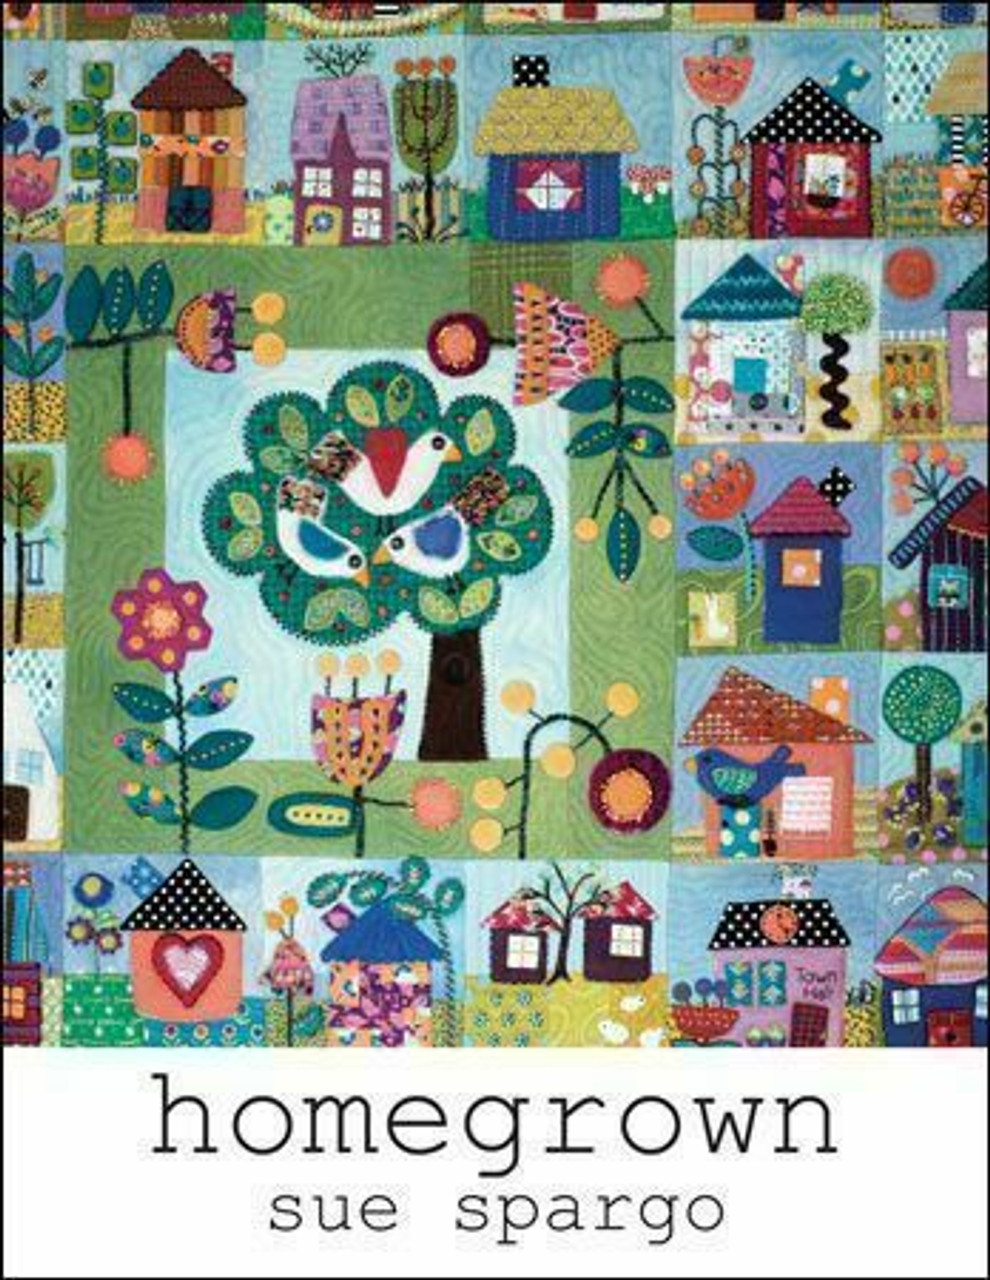 Sue Spargo : Homegrown